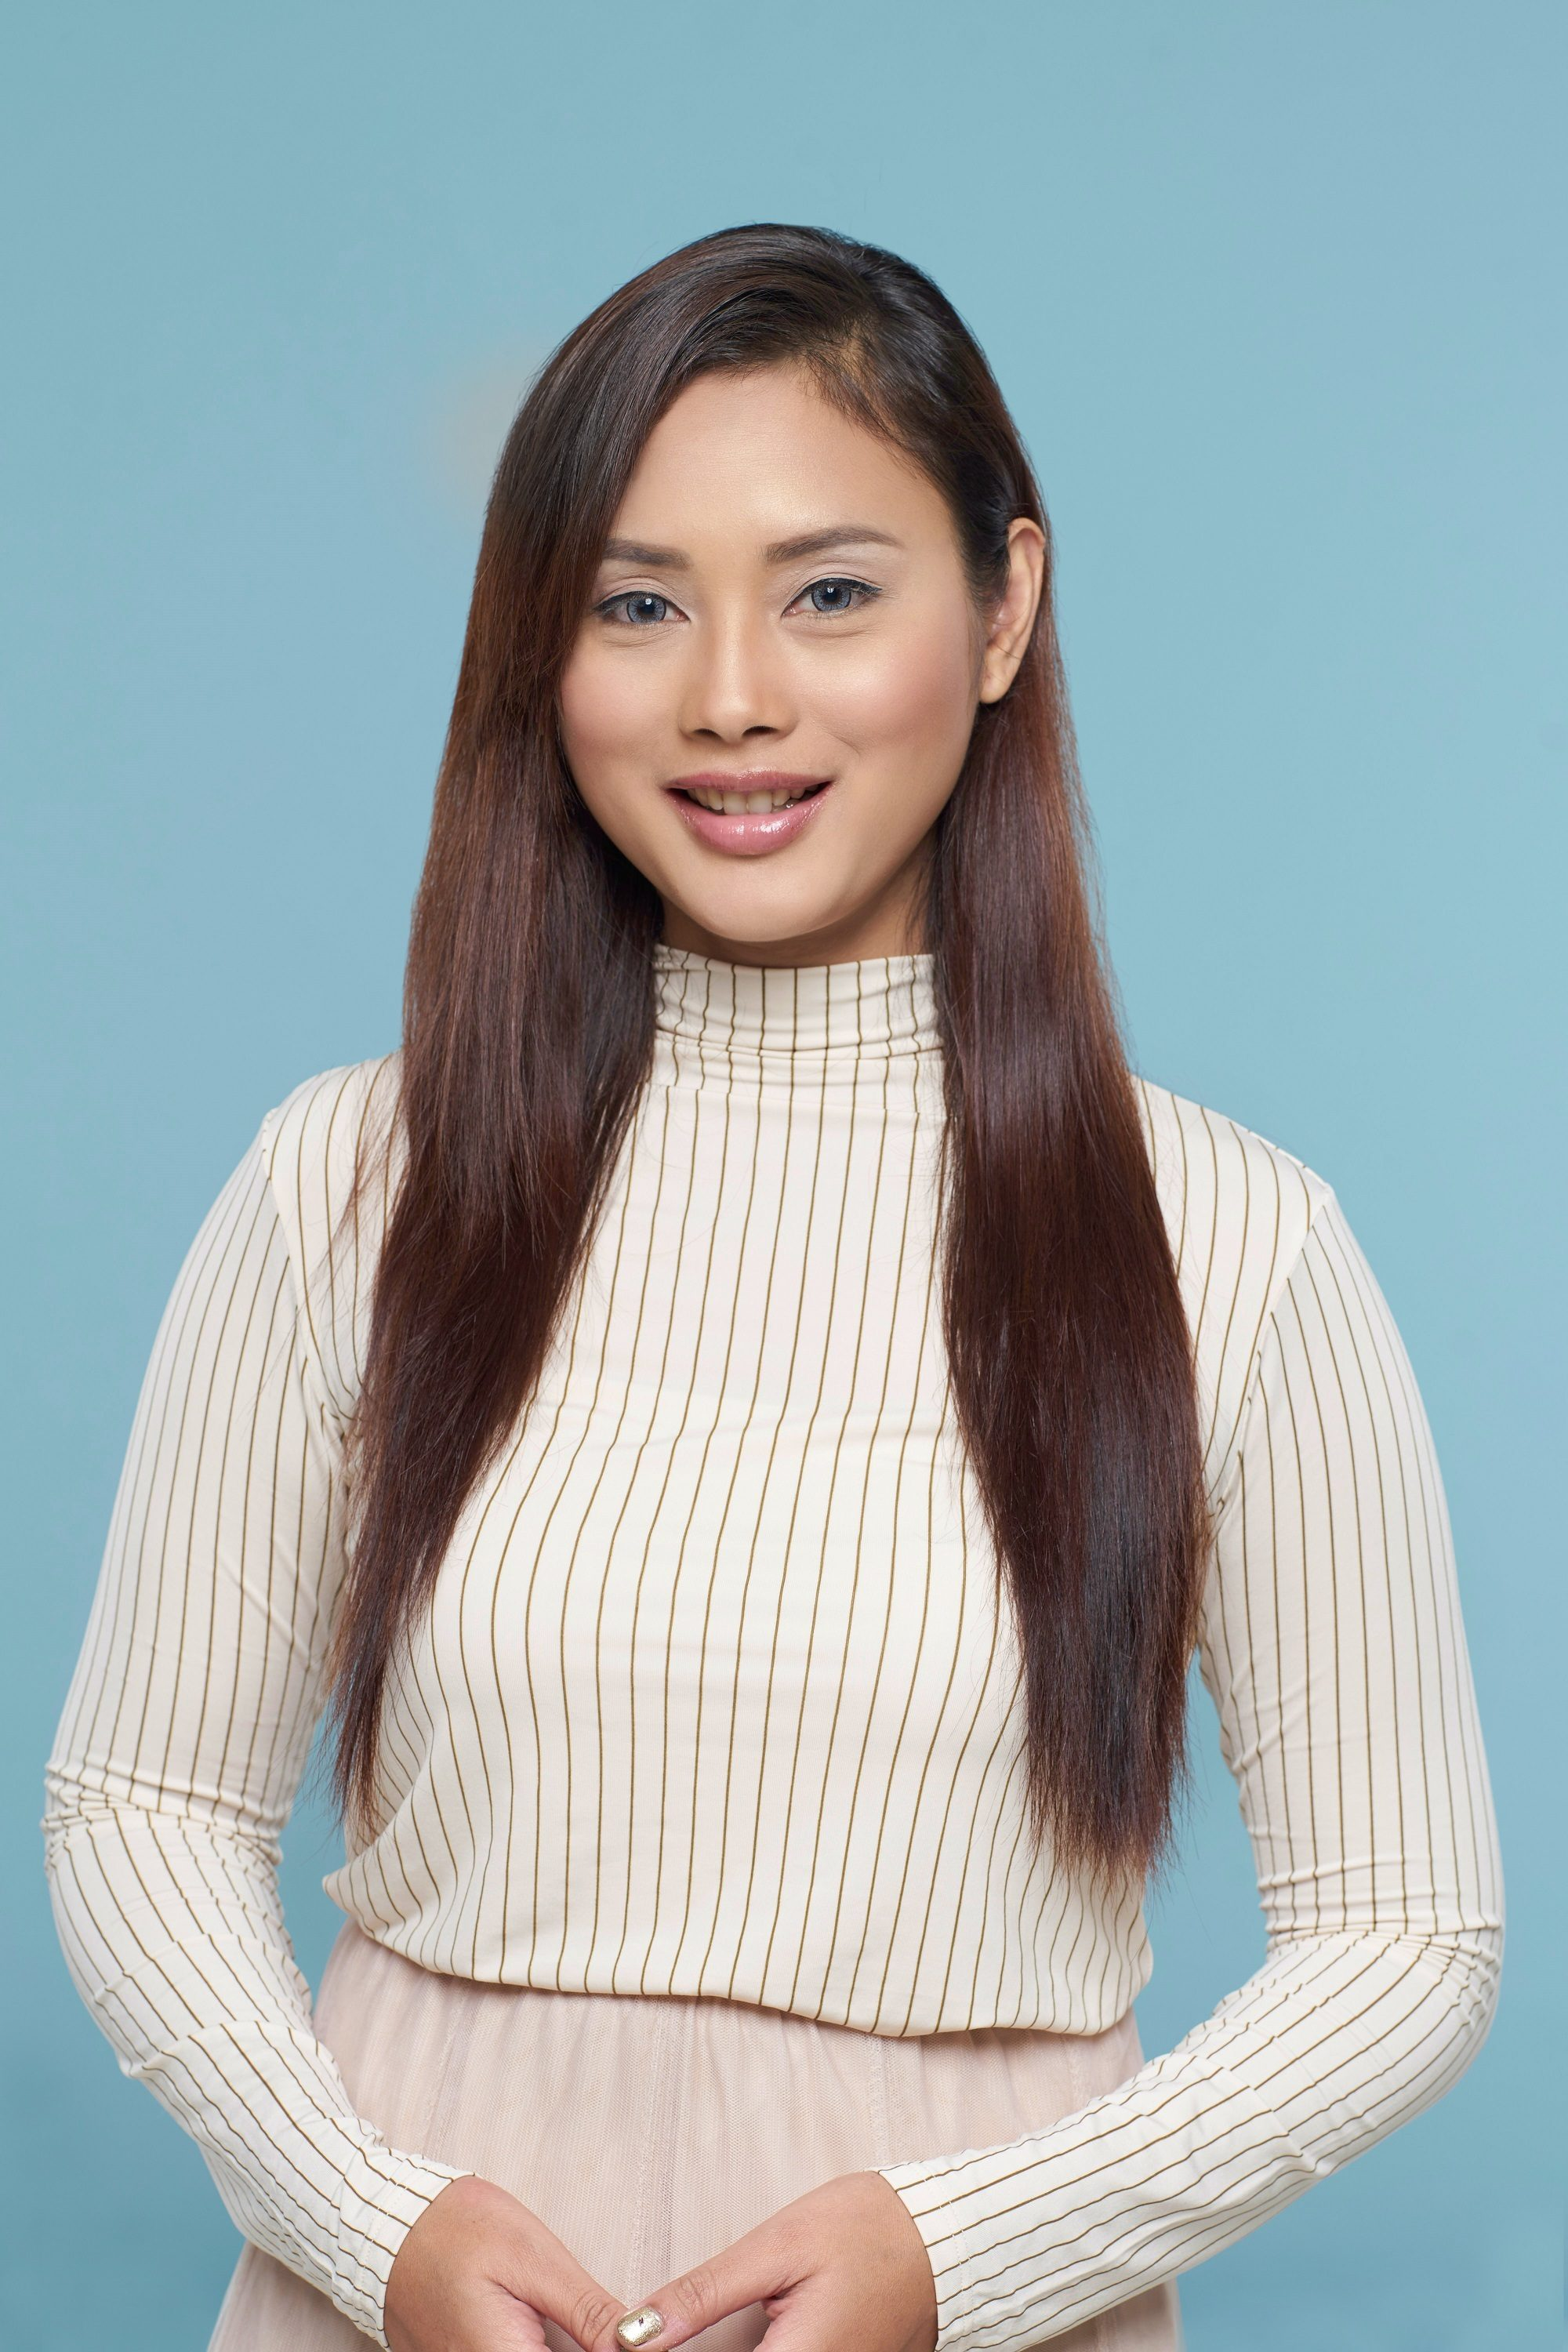 How to use leave-in conditioner: Asian woman with long dark hair wearing a white long-sleeved top